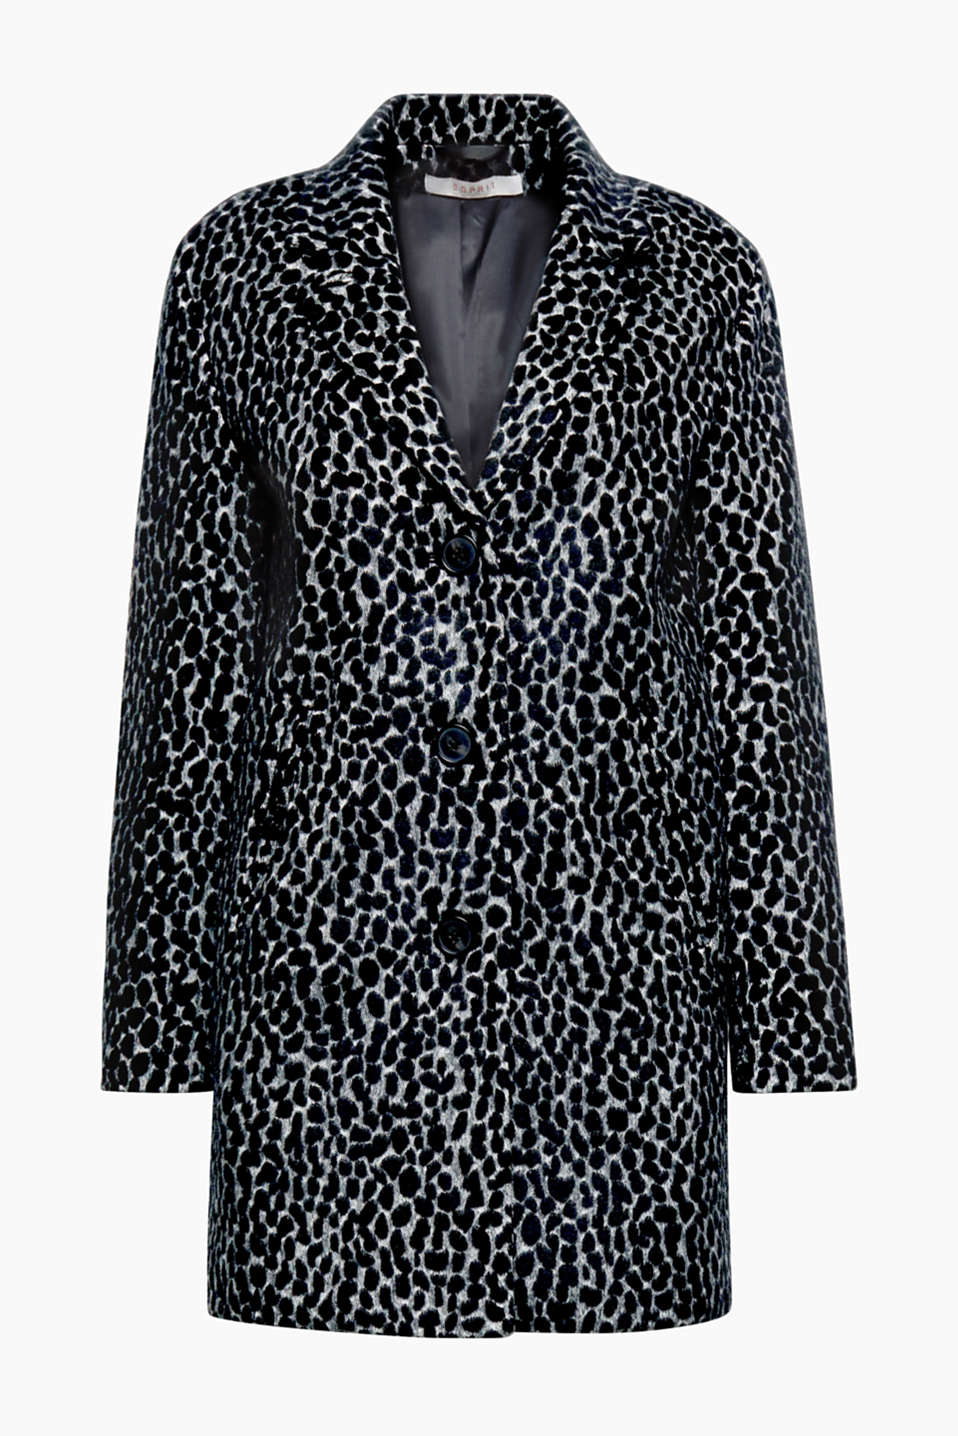 This stylish coat with a soft leopard print finish will get you through the autumn wrapped up in warmth and style!